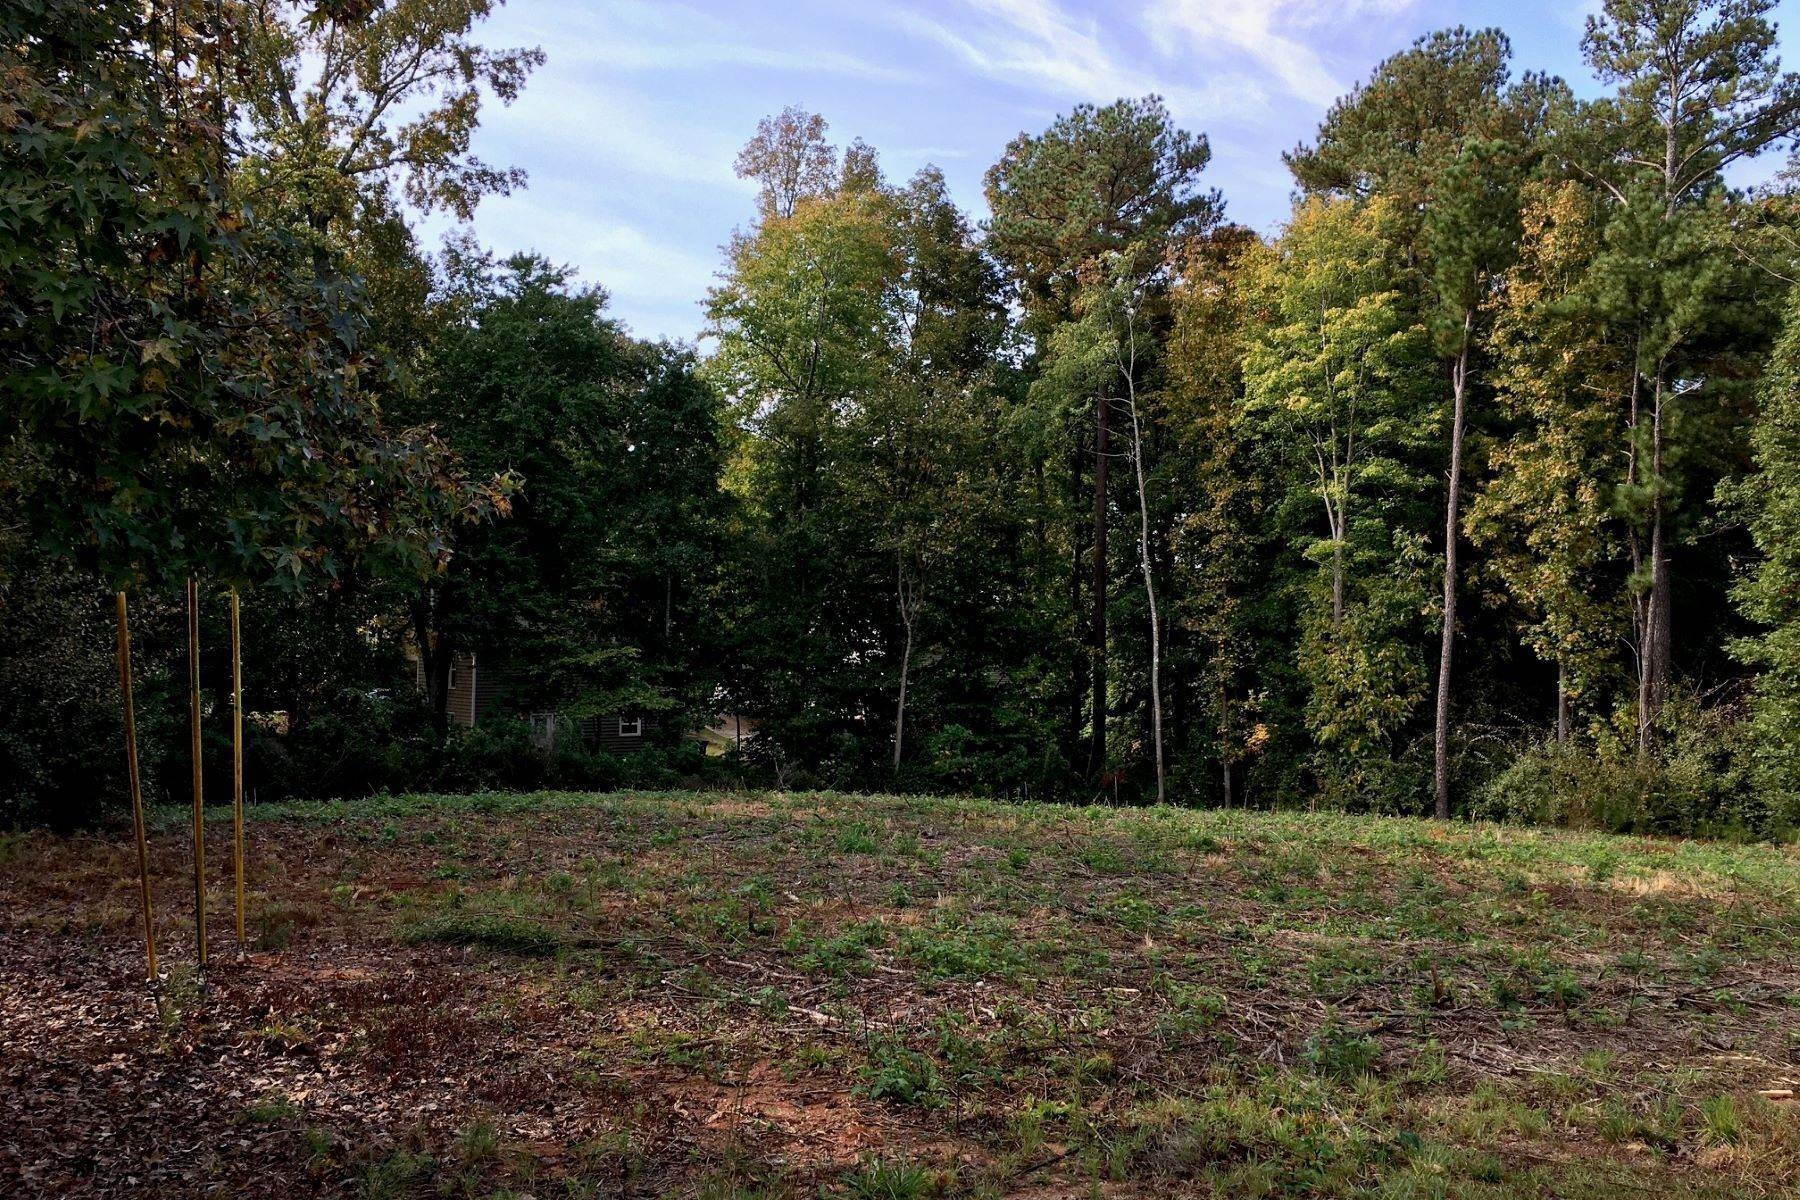 4. Land for Sale at 203 High House Rd. Cary, NC 203 High House Rd. Cary, North Carolina 27513 United States